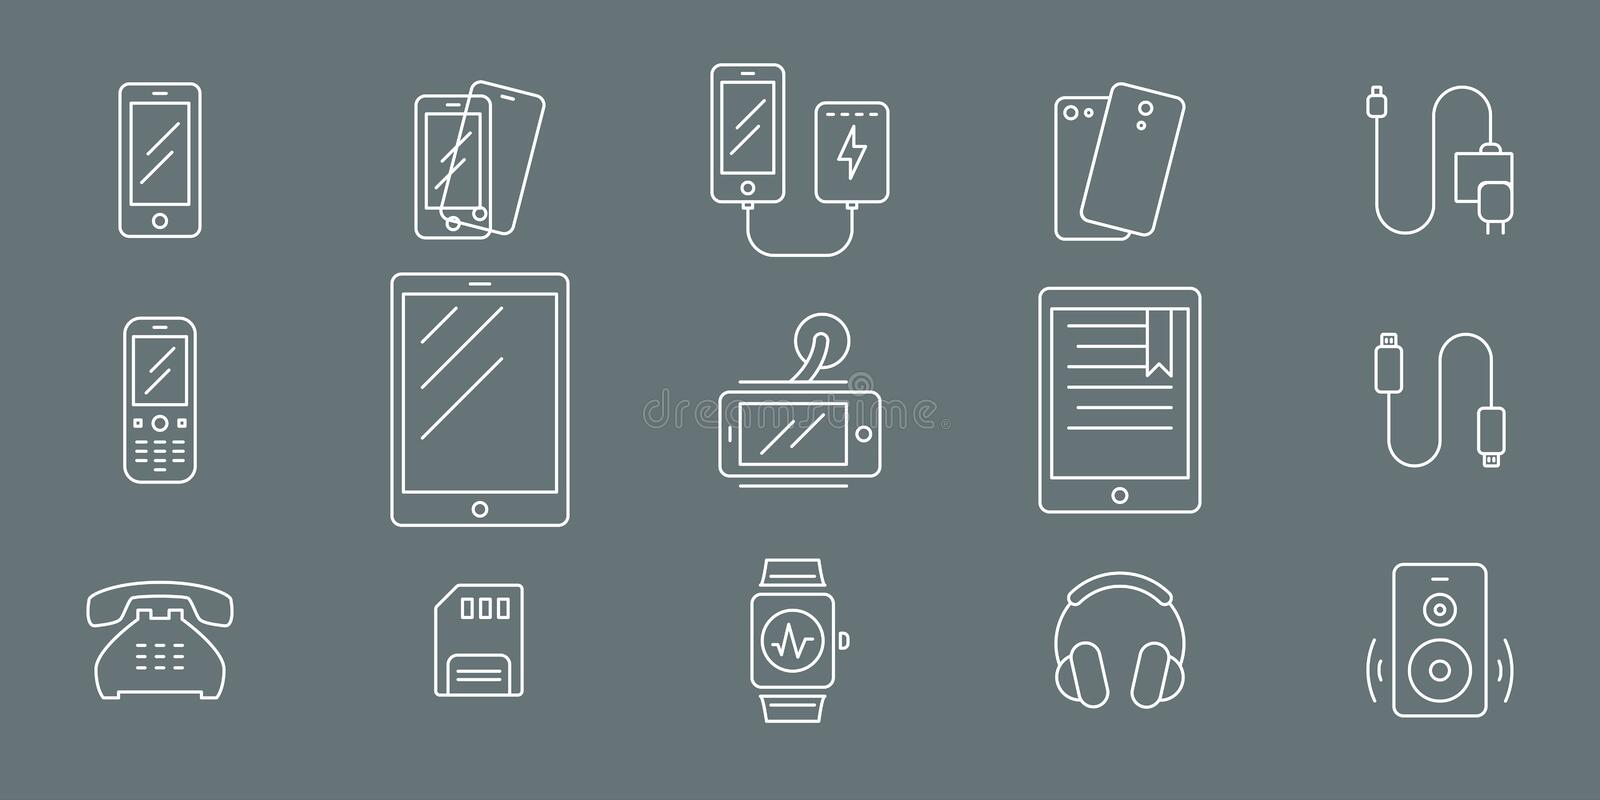 Smartphone and accessories Icons 01 vector illustration